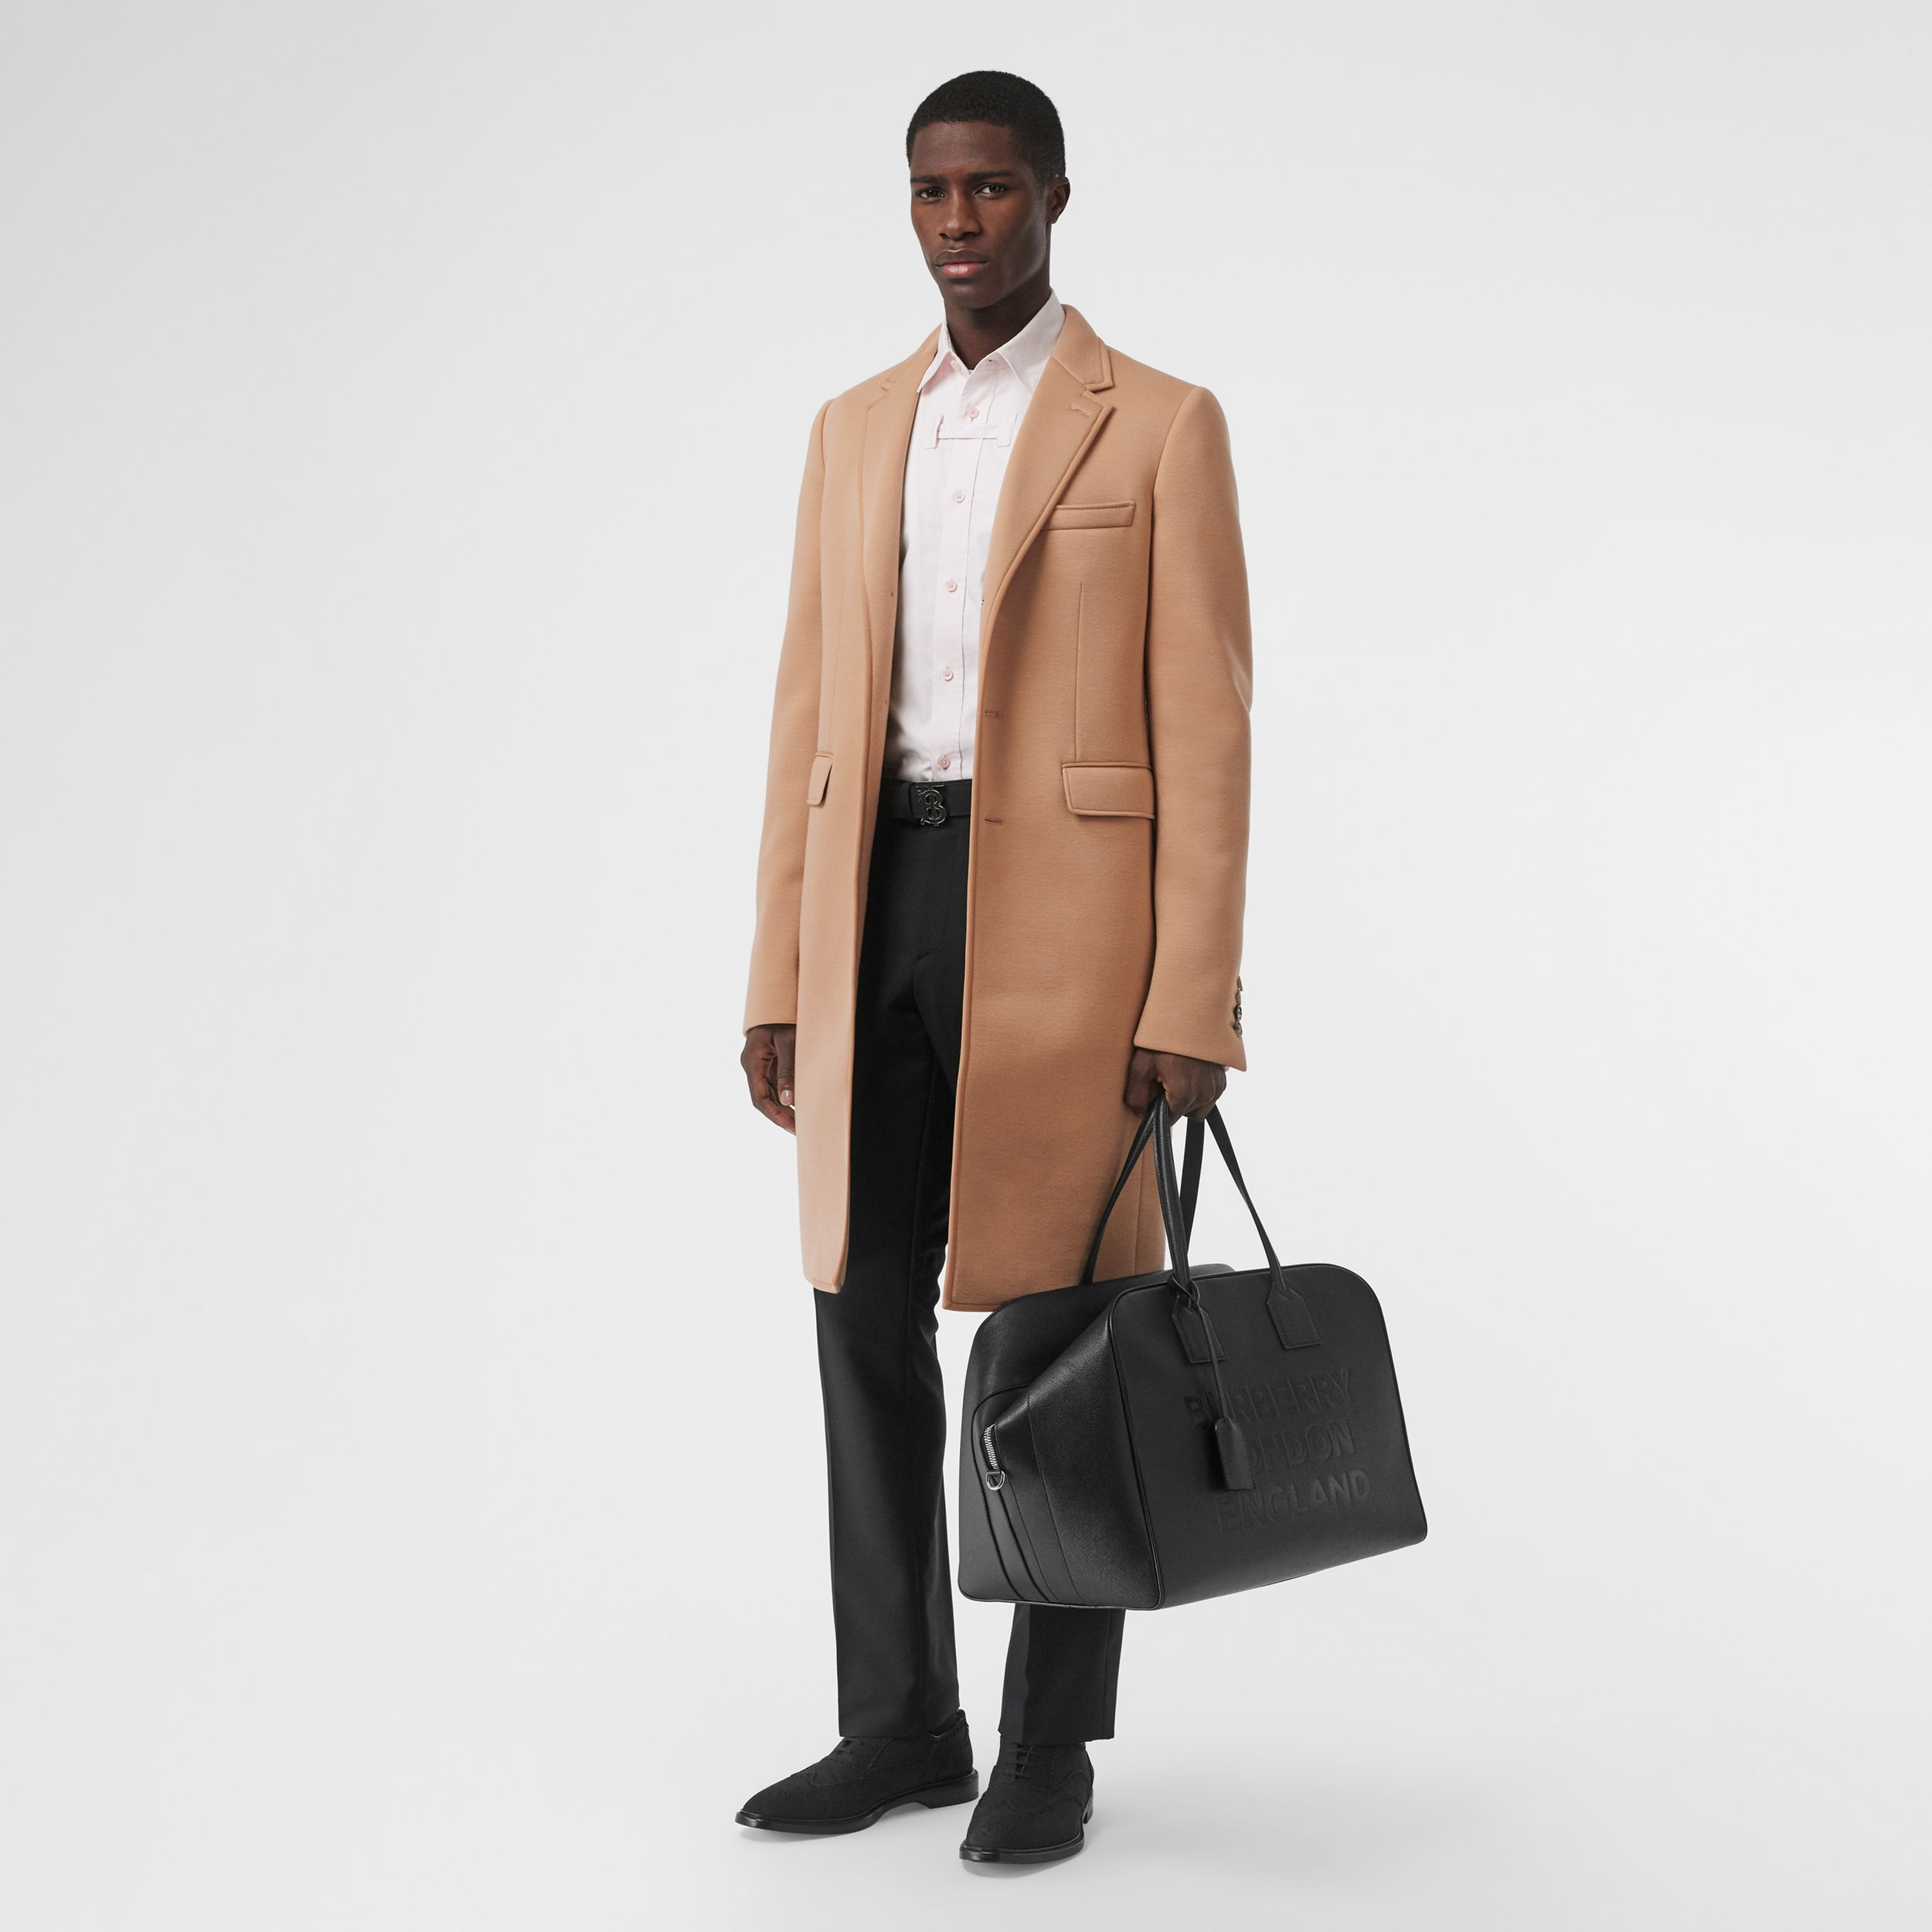 Neoprene Tailored Coat in Beige | Burberry - 1